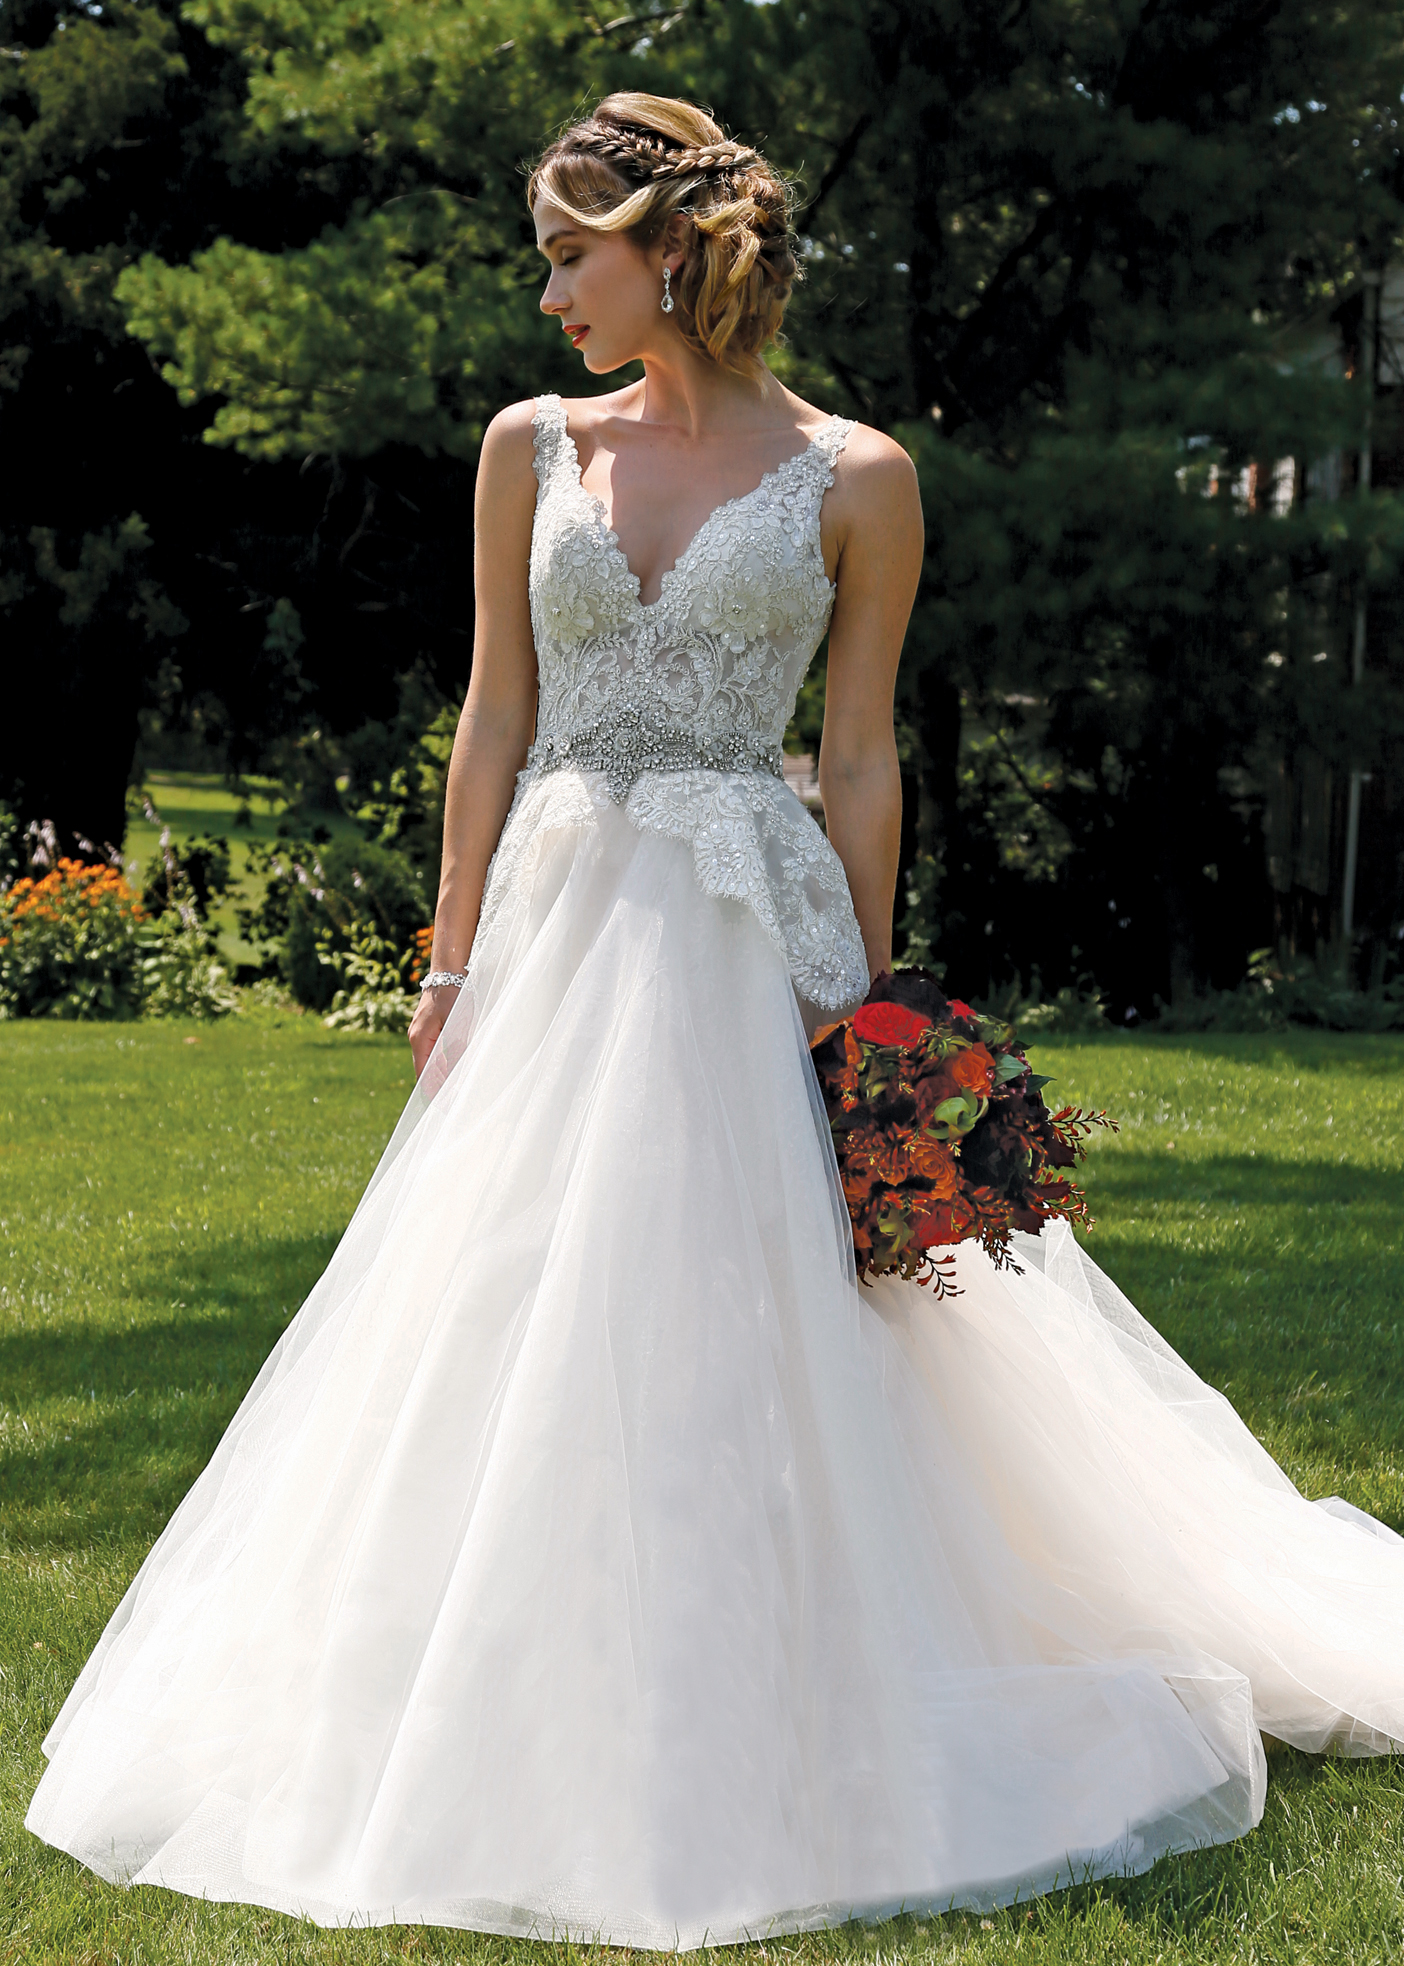 Ballgown dress bridal wedding gown by eve of milady ny nj for Wedding dress preservation nyc